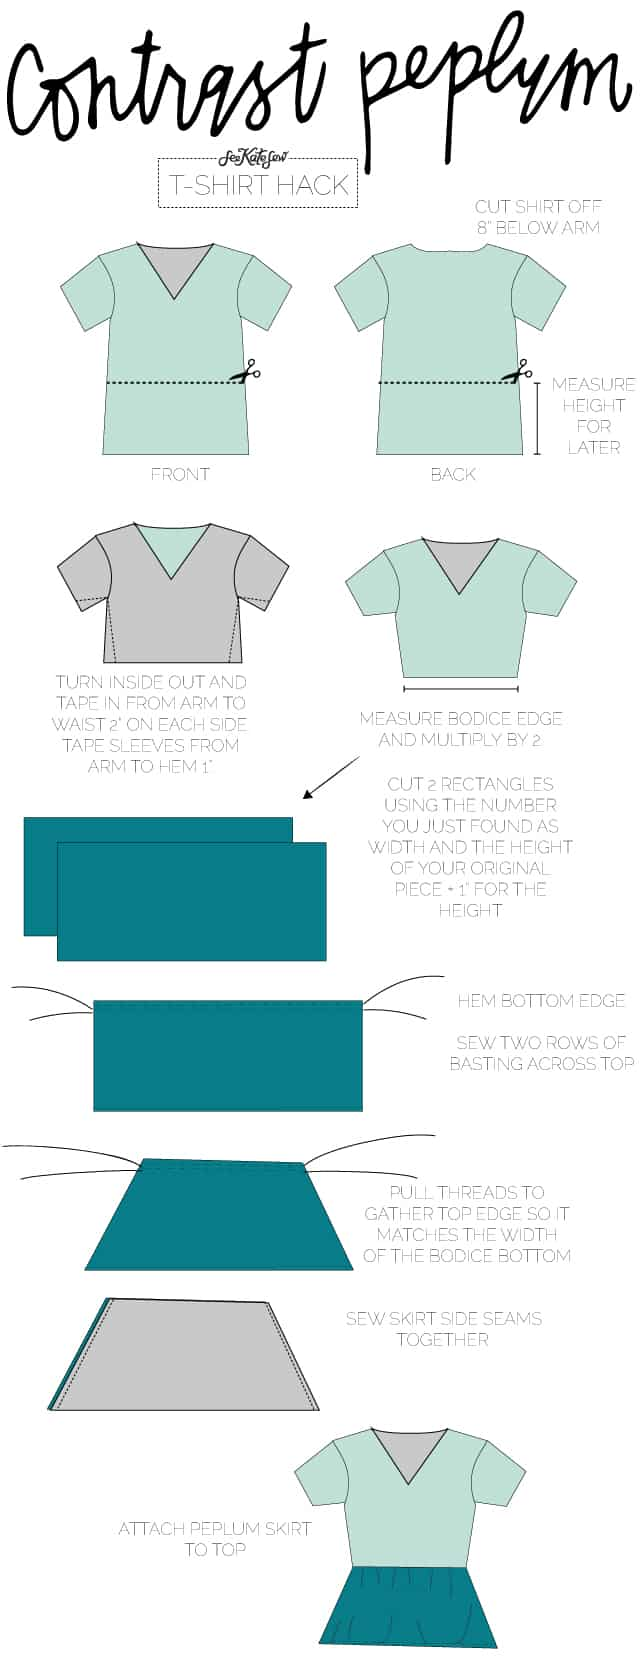 contrast peplum | 10 Ways to Refashion a Basic Tee | 10 T-Shirt Hacks | t-shirt sewing tips | sewing tips and tricks | easy sewing tutorials | how to re-use an old t-shirt || See Kate Sew #sewingtutorial #tshirthack